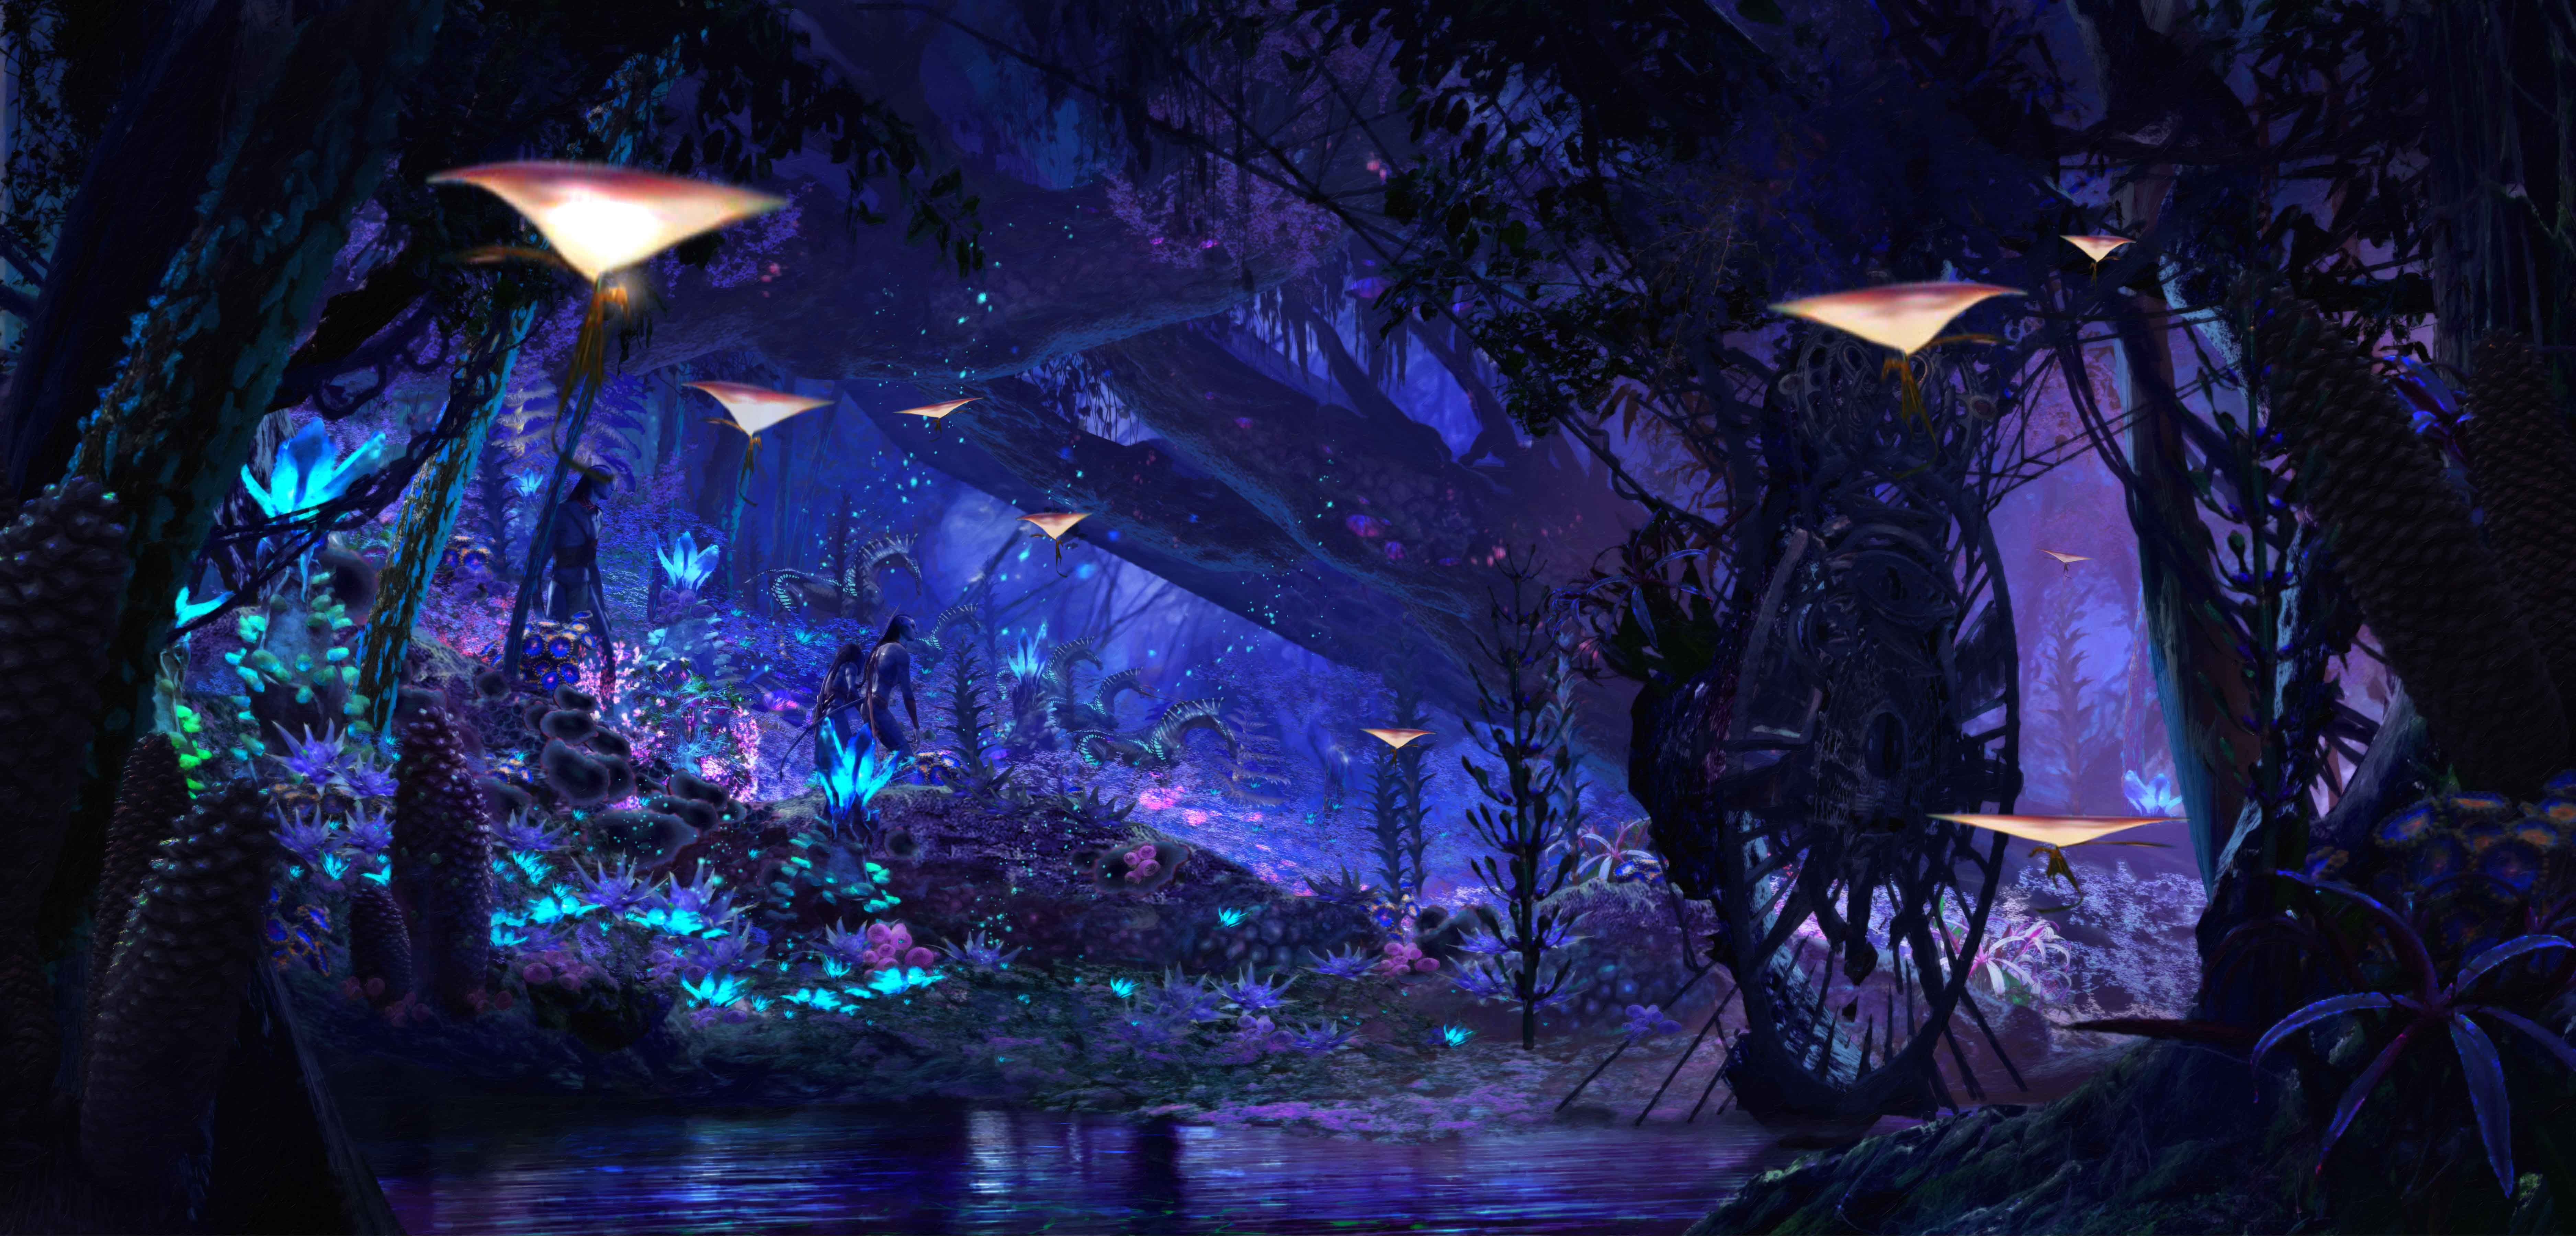 Disney Shares Details About Family Attraction In Avatar Project